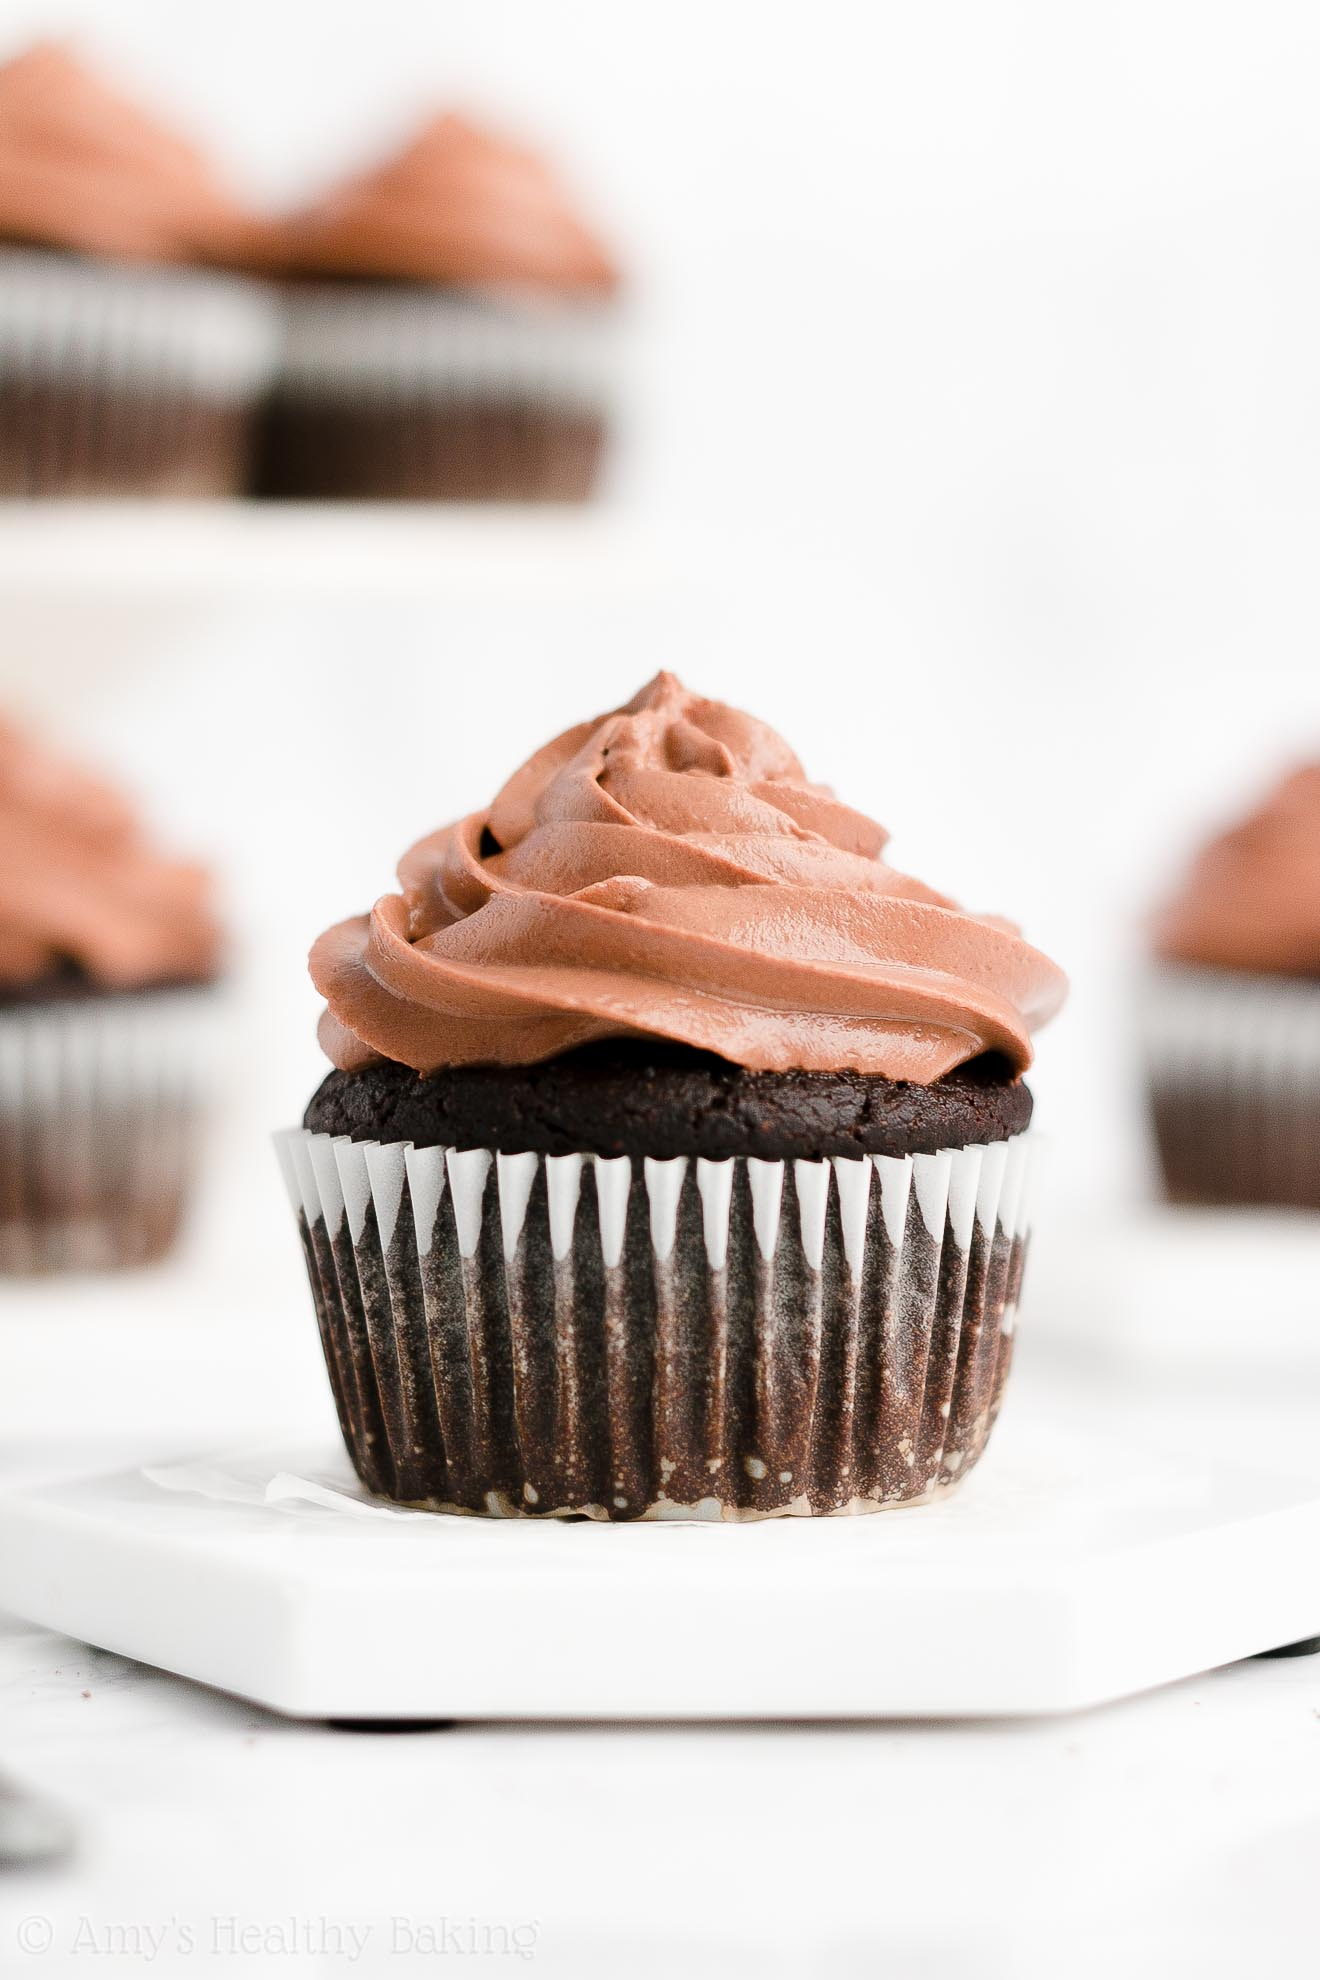 Best Easy Healthy Weight Watchers Low Calorie One-Bowl Chocolate Cupcakes